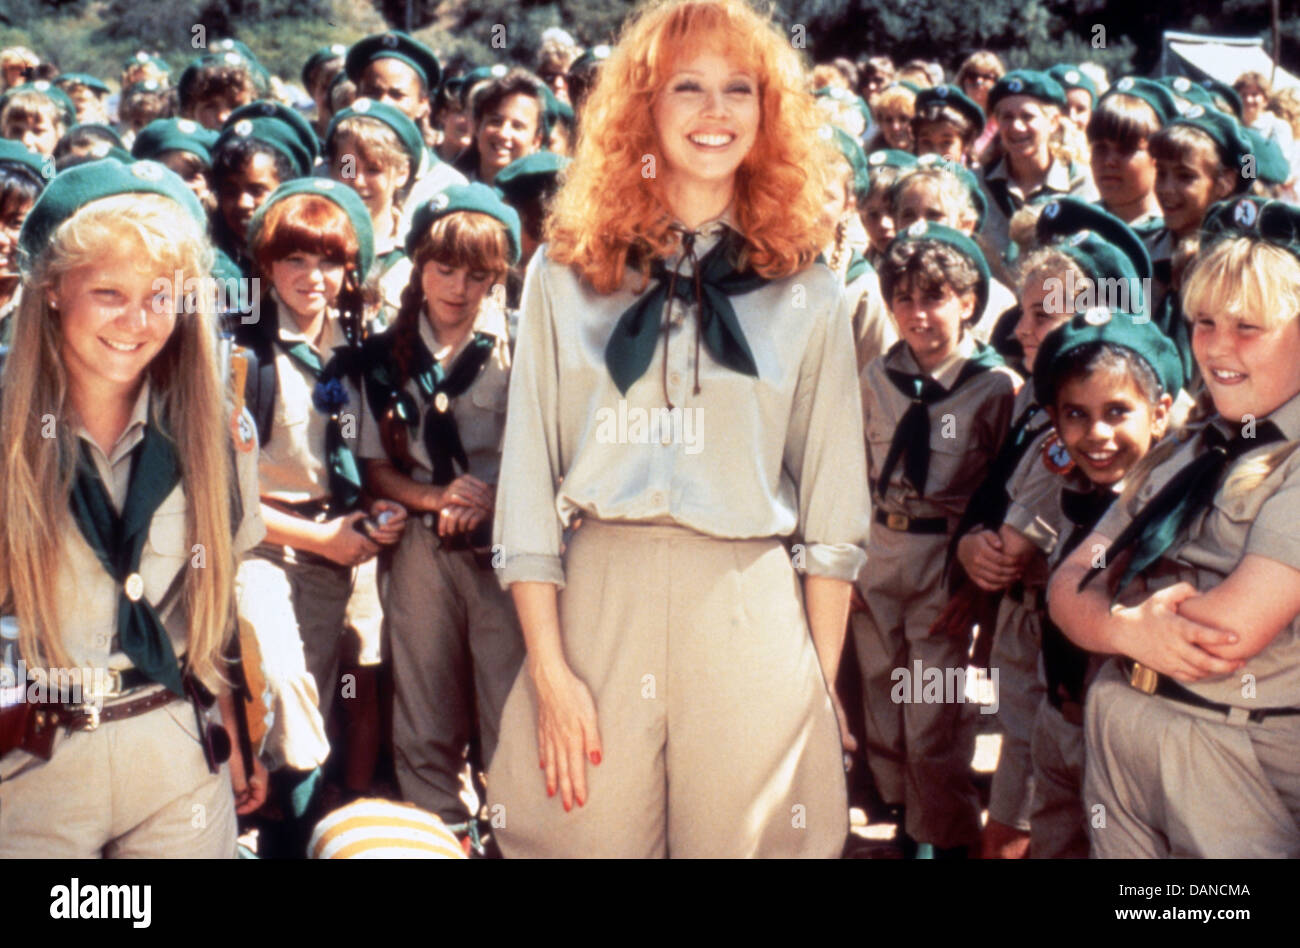 TROOP BEVERLY HILLS (1989) SHELLY LONG, JEFF KANEW (DIR) TBH 001 MOVIESTORE COLLECTION LTD - Stock Image